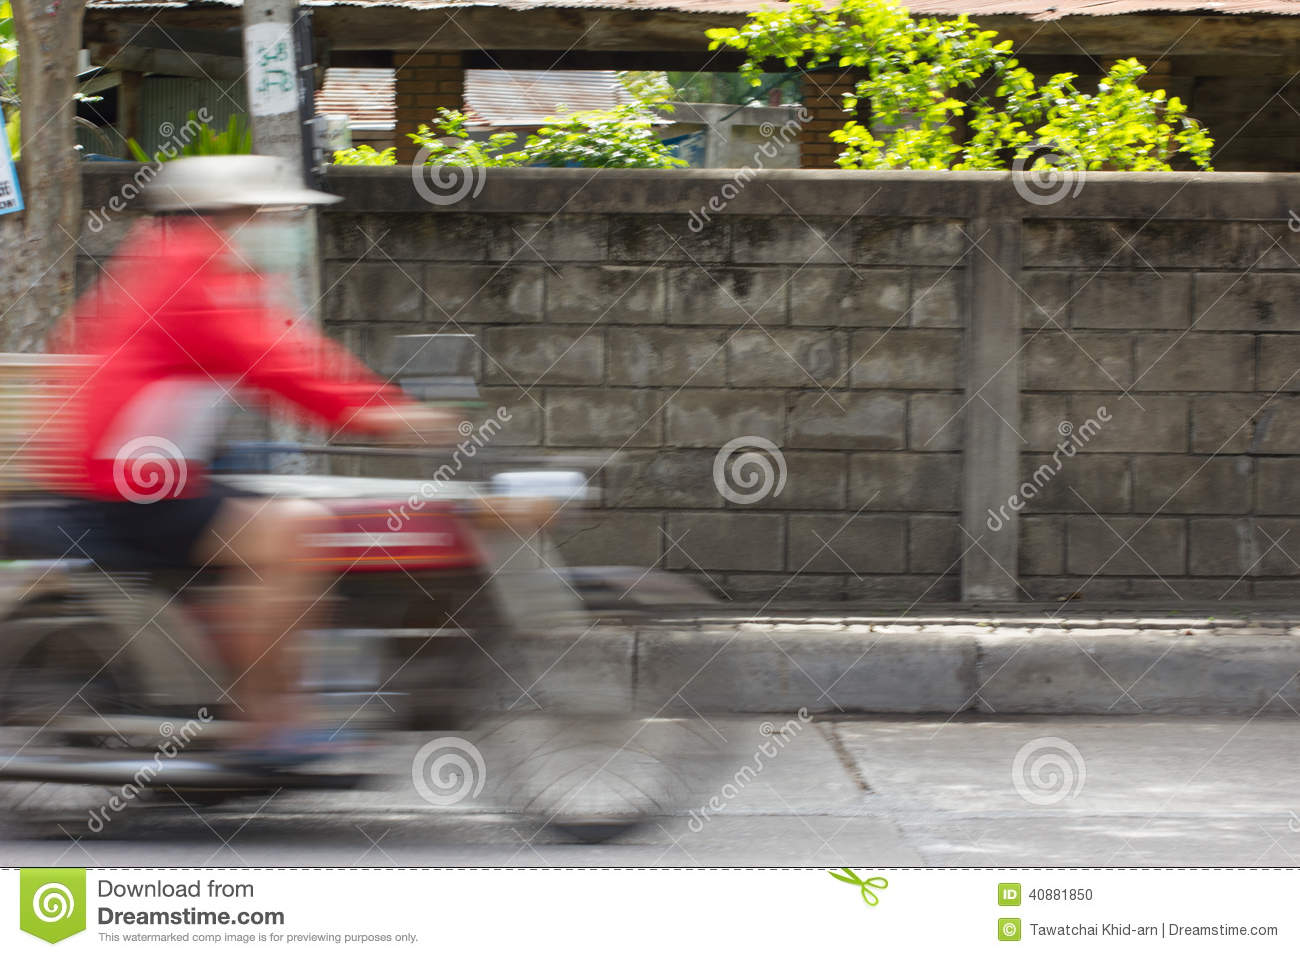 Blurred image of vehicles running on street in Thailand (motion